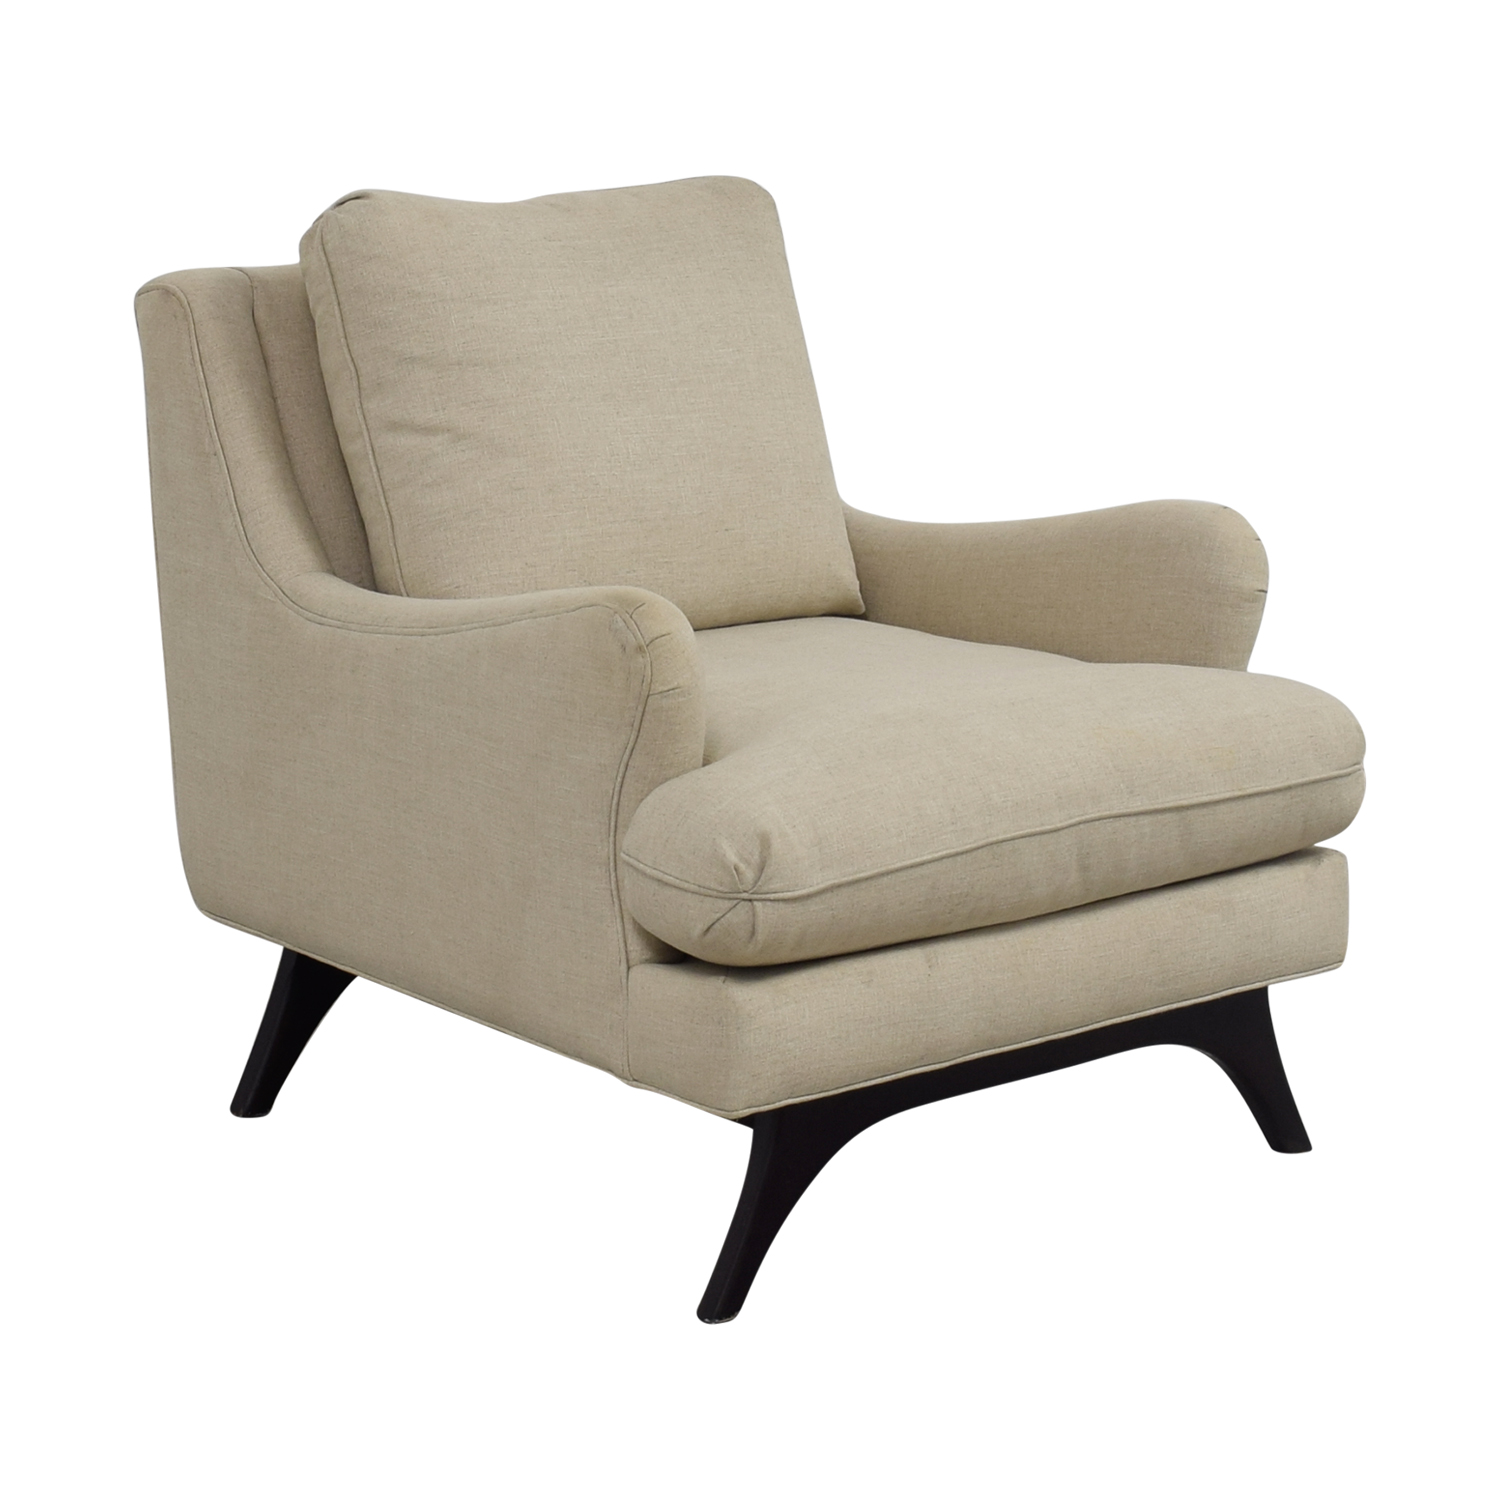 ... Younger Furniture Younger Furniture Mid Century Lewis Beige Accent  Chair Used ...